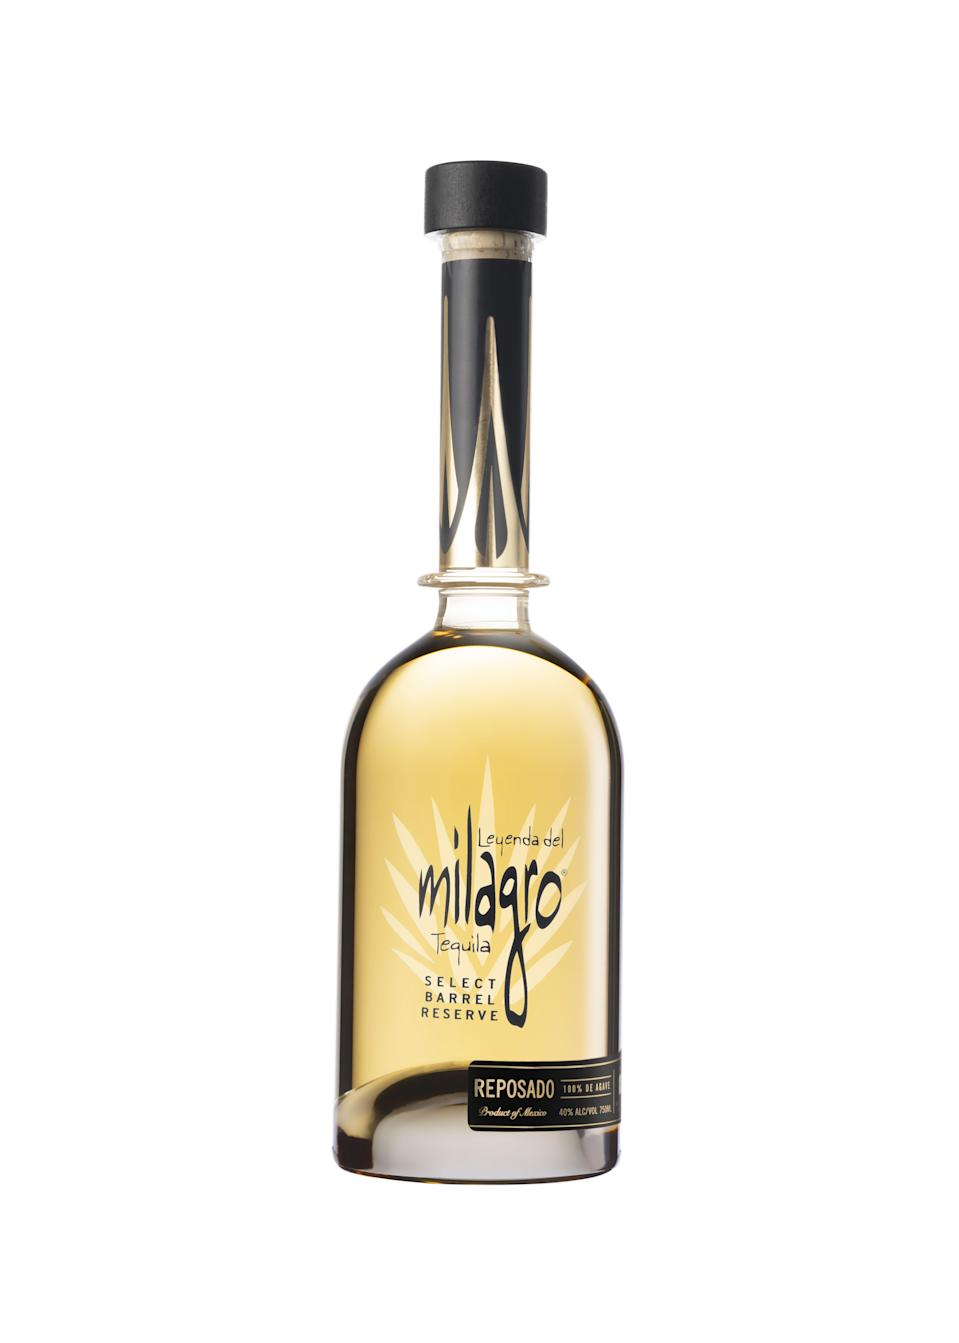 """<p><strong>tequila</strong></p><p>drizly.com</p><p><strong>$55.99</strong></p><p><a href=""""https://go.redirectingat.com?id=74968X1596630&url=https%3A%2F%2Fdrizly.com%2Fmilagro-tequila-barrel-select-reserve-reposado%2Fp5973&sref=https%3A%2F%2Fwww.townandcountrymag.com%2Fleisure%2Fdrinks%2Fg1458%2Fsipping-tequilas%2F"""" rel=""""nofollow noopener"""" target=""""_blank"""" data-ylk=""""slk:Shop Now"""" class=""""link rapid-noclick-resp"""">Shop Now</a></p><p>Milagro's Select Barrel Reserve Reposado is distilled twice (first in a pot still, then in a column still) and rested for three to six months in American and French oak barrels.</p>"""